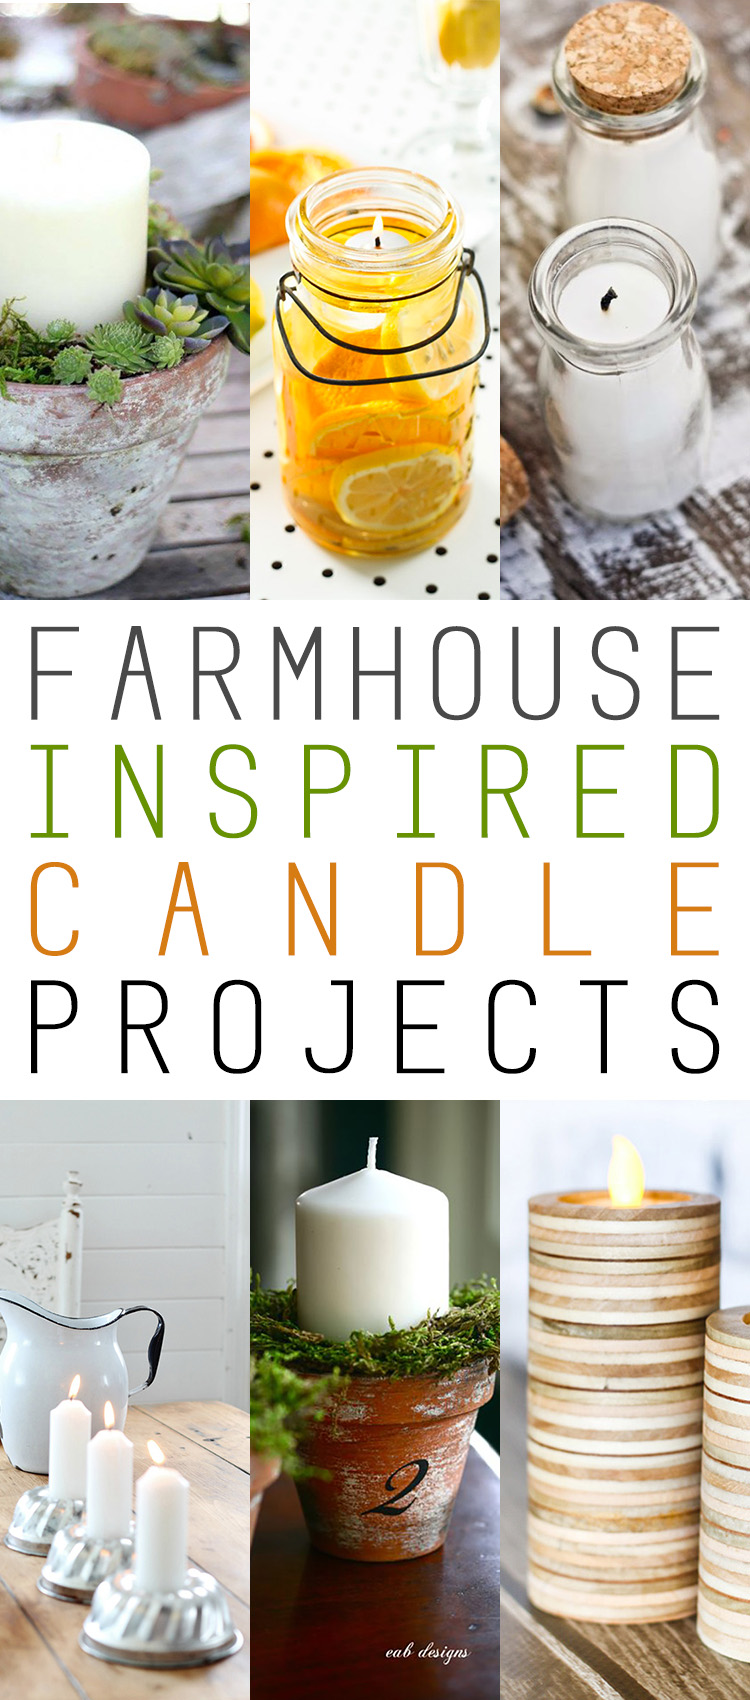 http://thecottagemarket.com/wp-content/uploads/2016/12/Candles-TOWER-0001.jpg